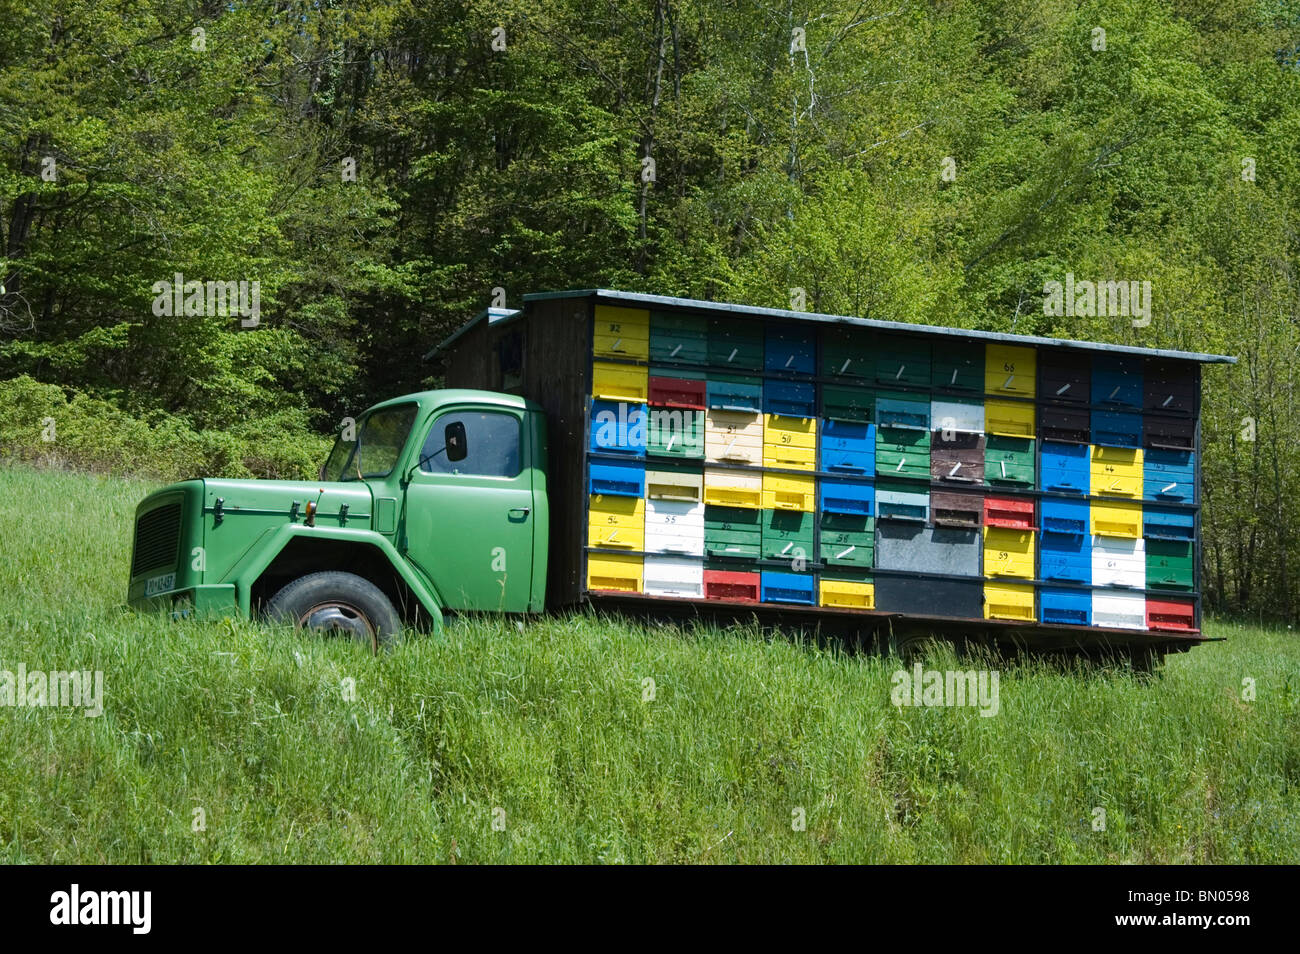 Where To Buy A Food Truck In Canada